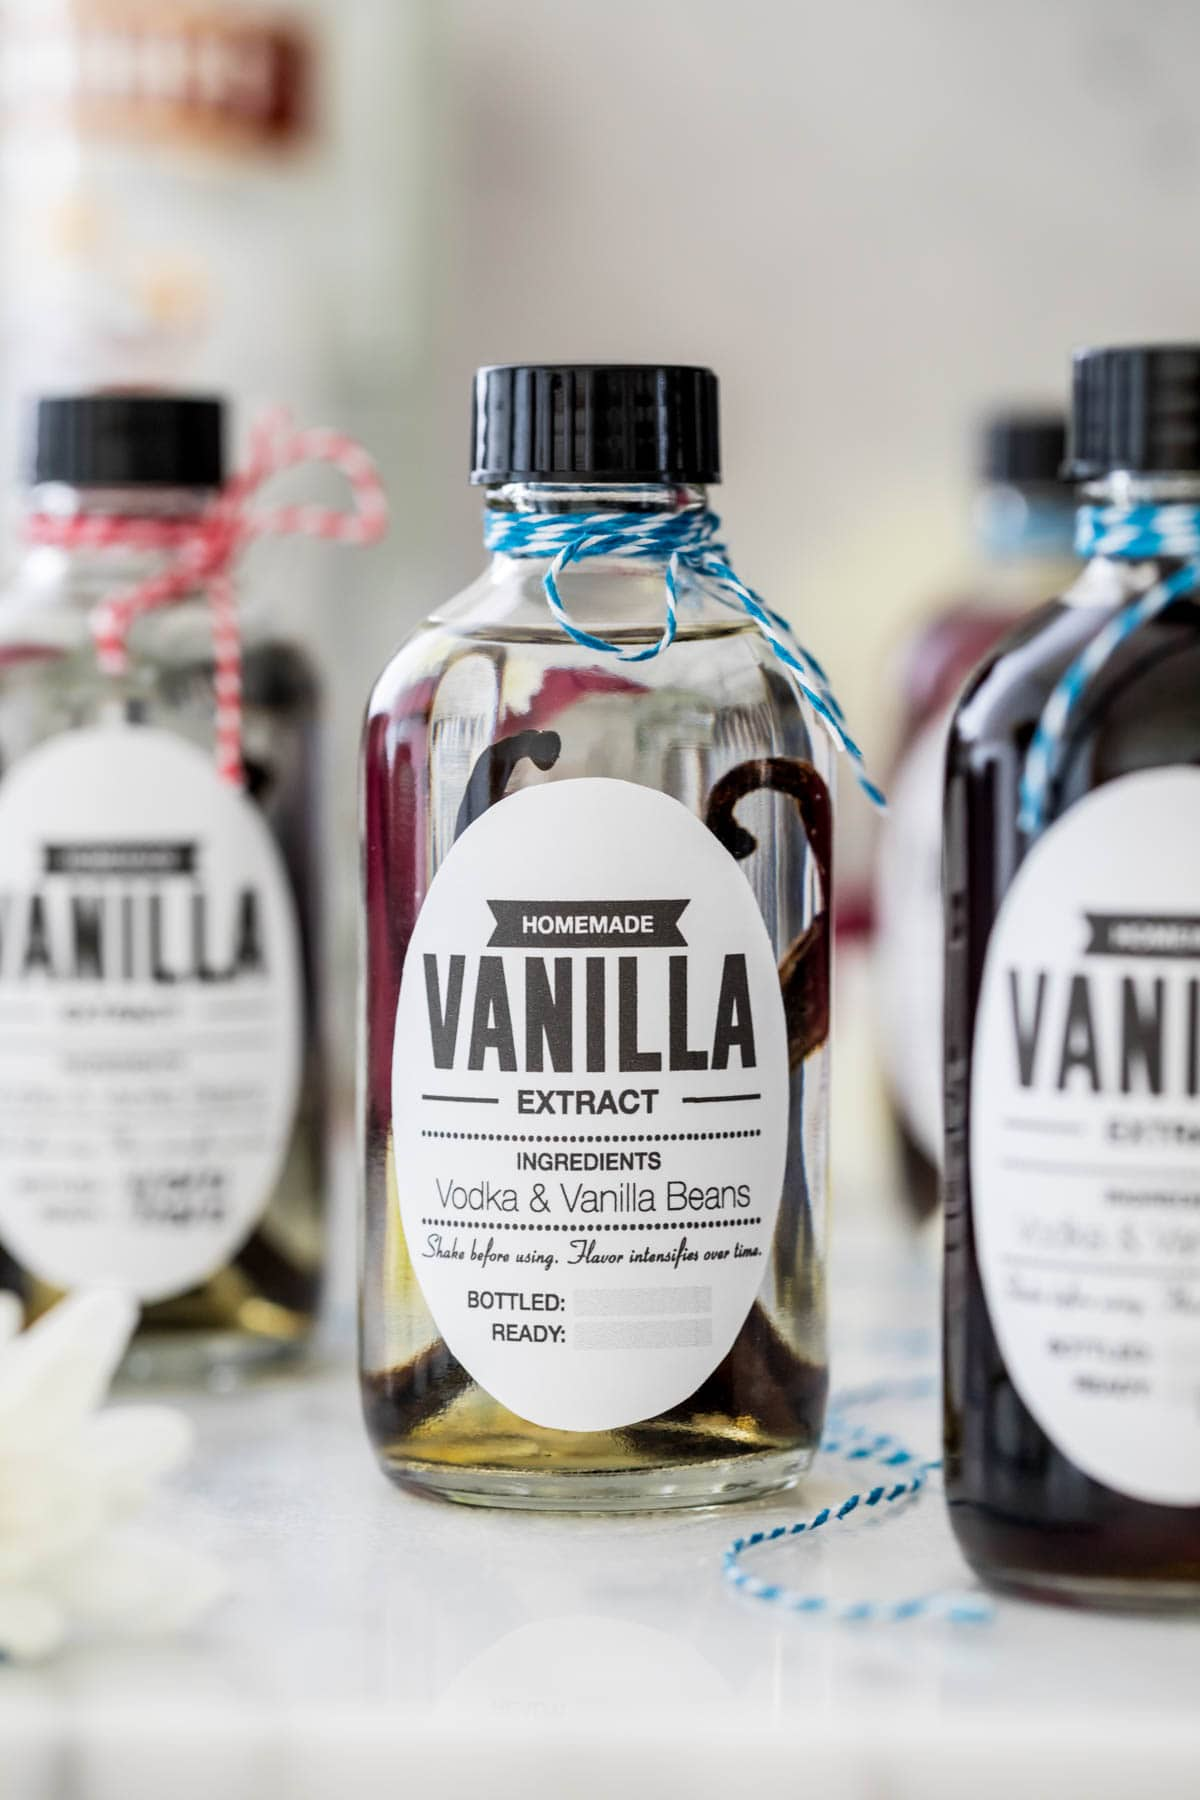 Bottle of extract showing vanilla beans